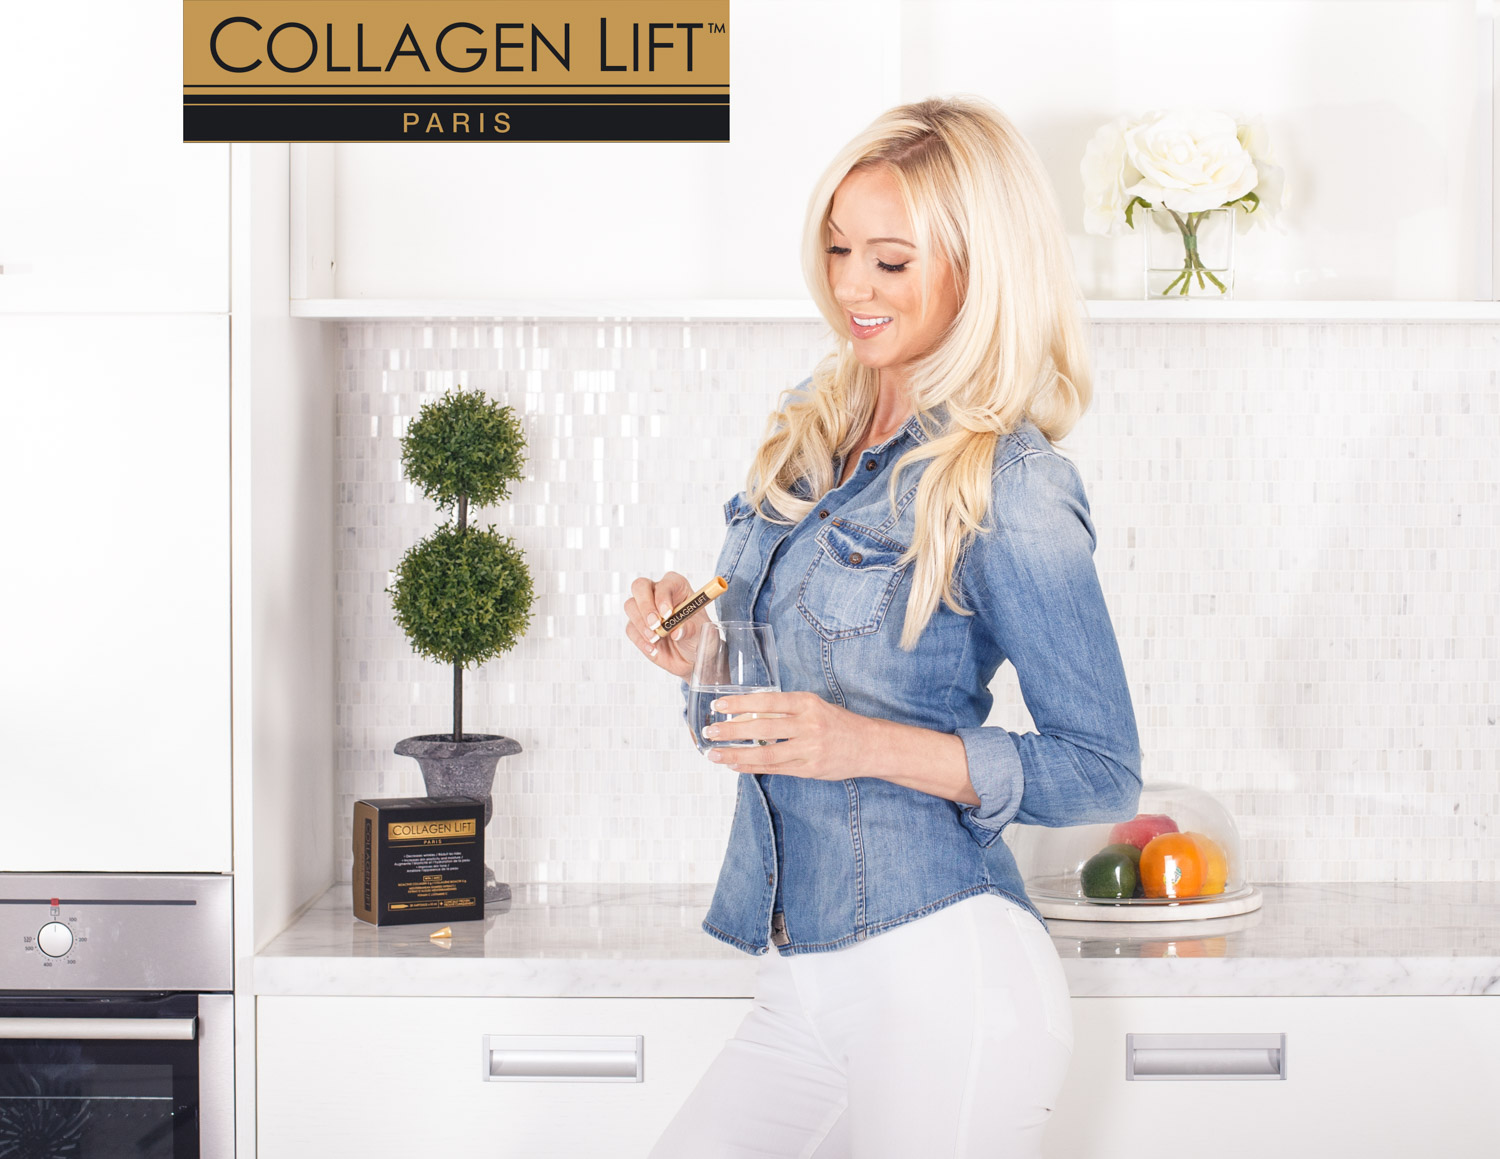 Kirsty Dunne Collagen Life Paris Blog Image